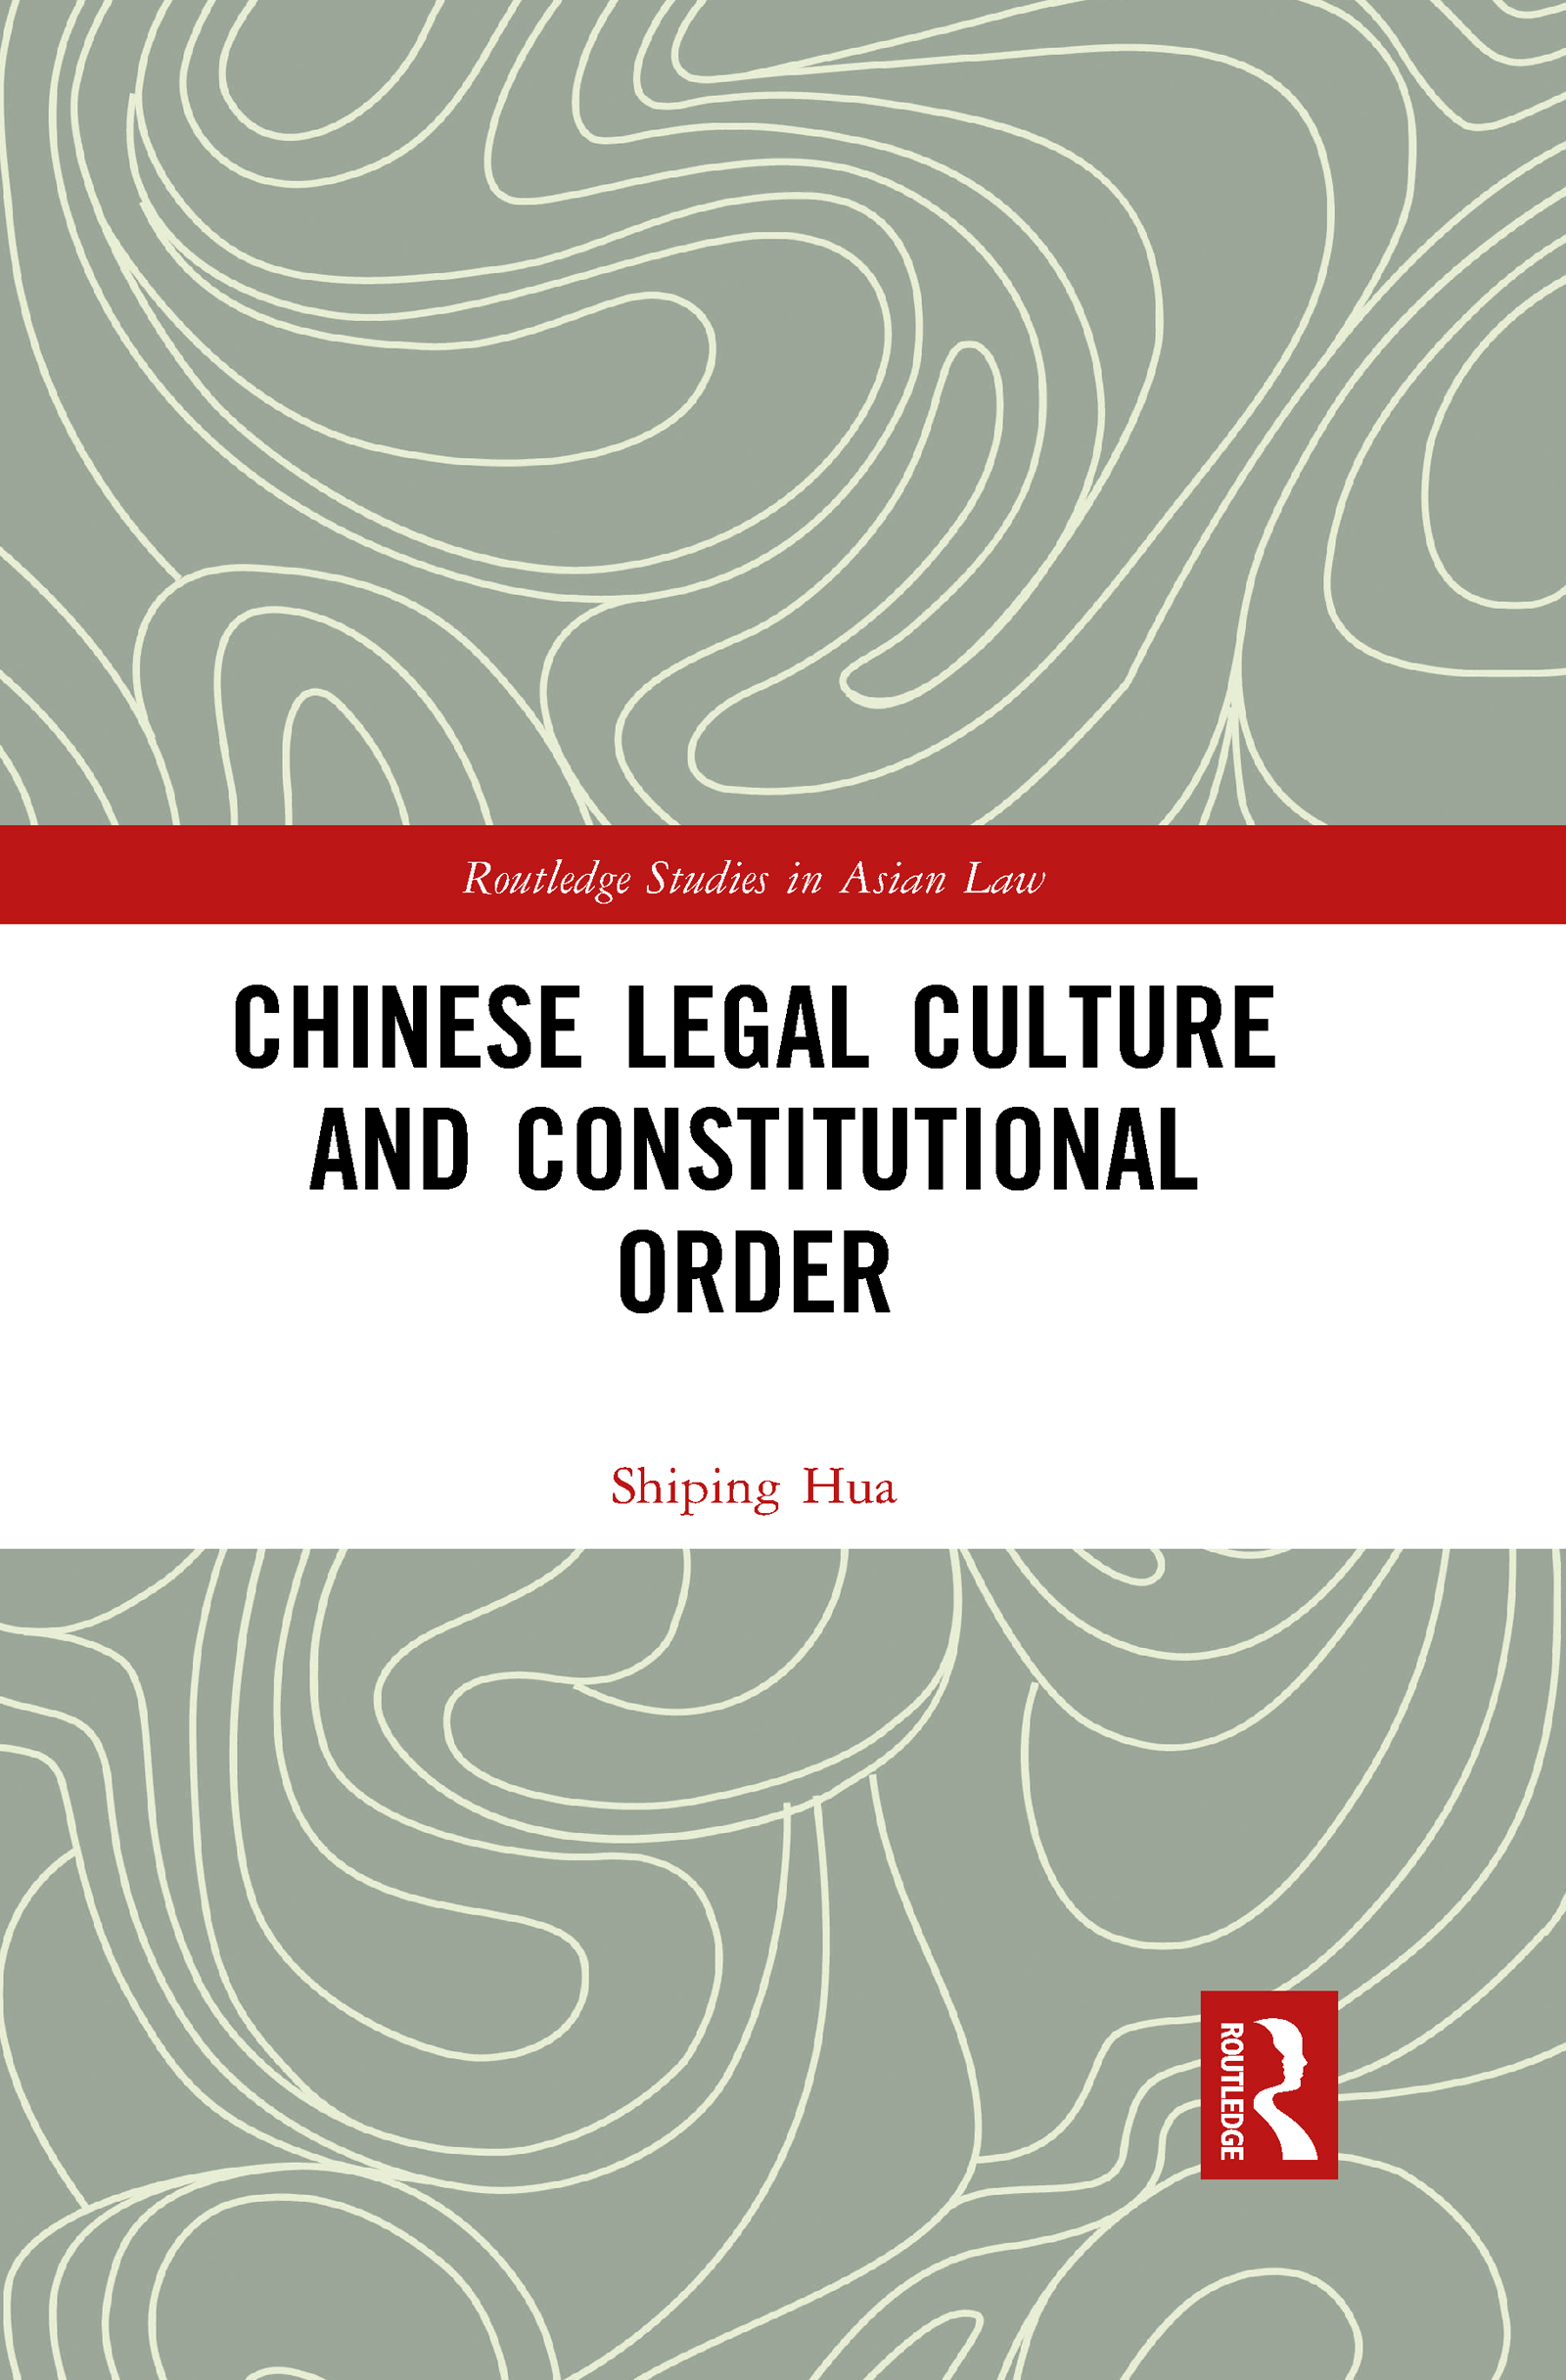 Chinese Legal Culture and Constitutional Order